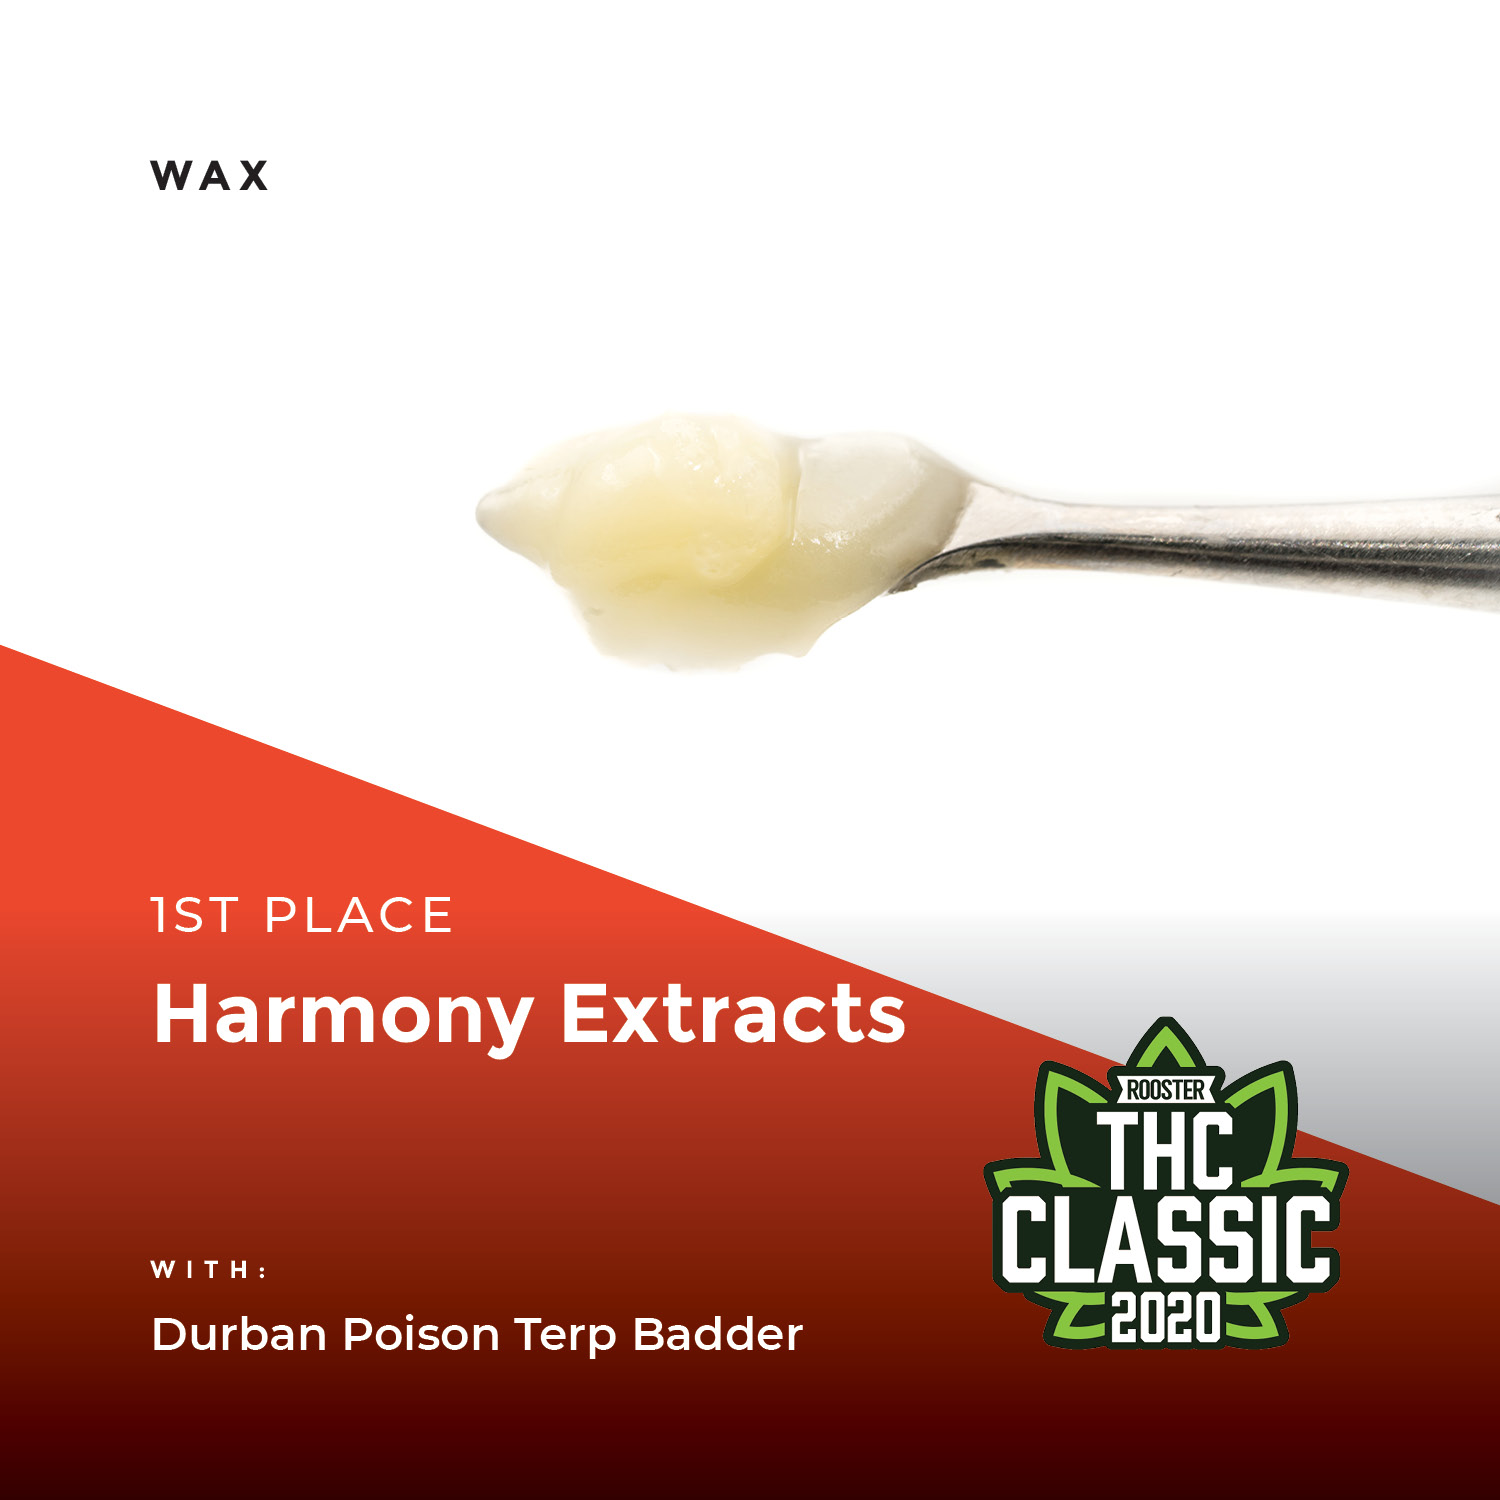 Best Colorado Cannabis Products: Wax